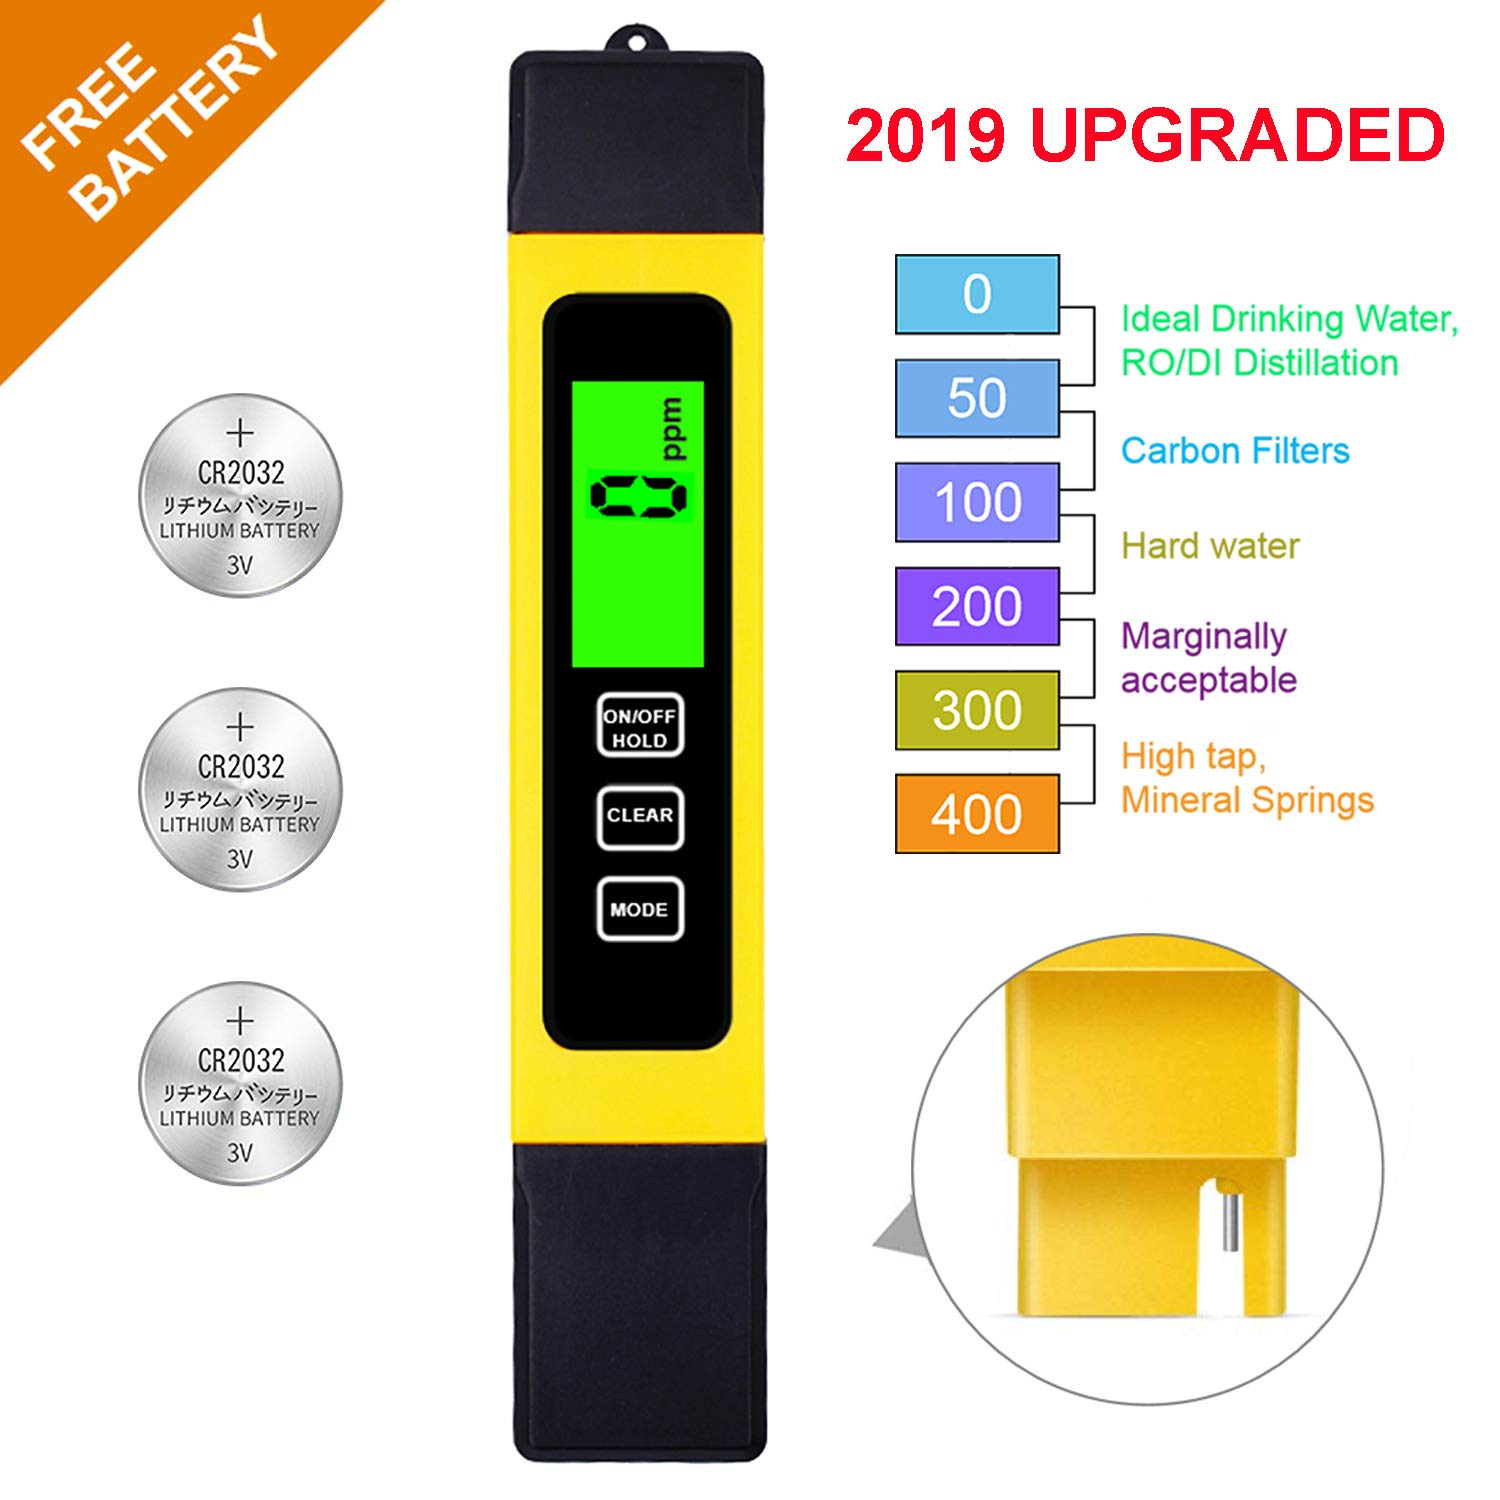 TDS Meter Digital Water Test Meter, TDS Temperature & Conductivity Meter 3 in 1, 0-9999 ppm, Hydroponics EC Meter, Digital Water Quality Testers for Drinking Water, ppm Meter for Hydroponics Aquarium by Hofun